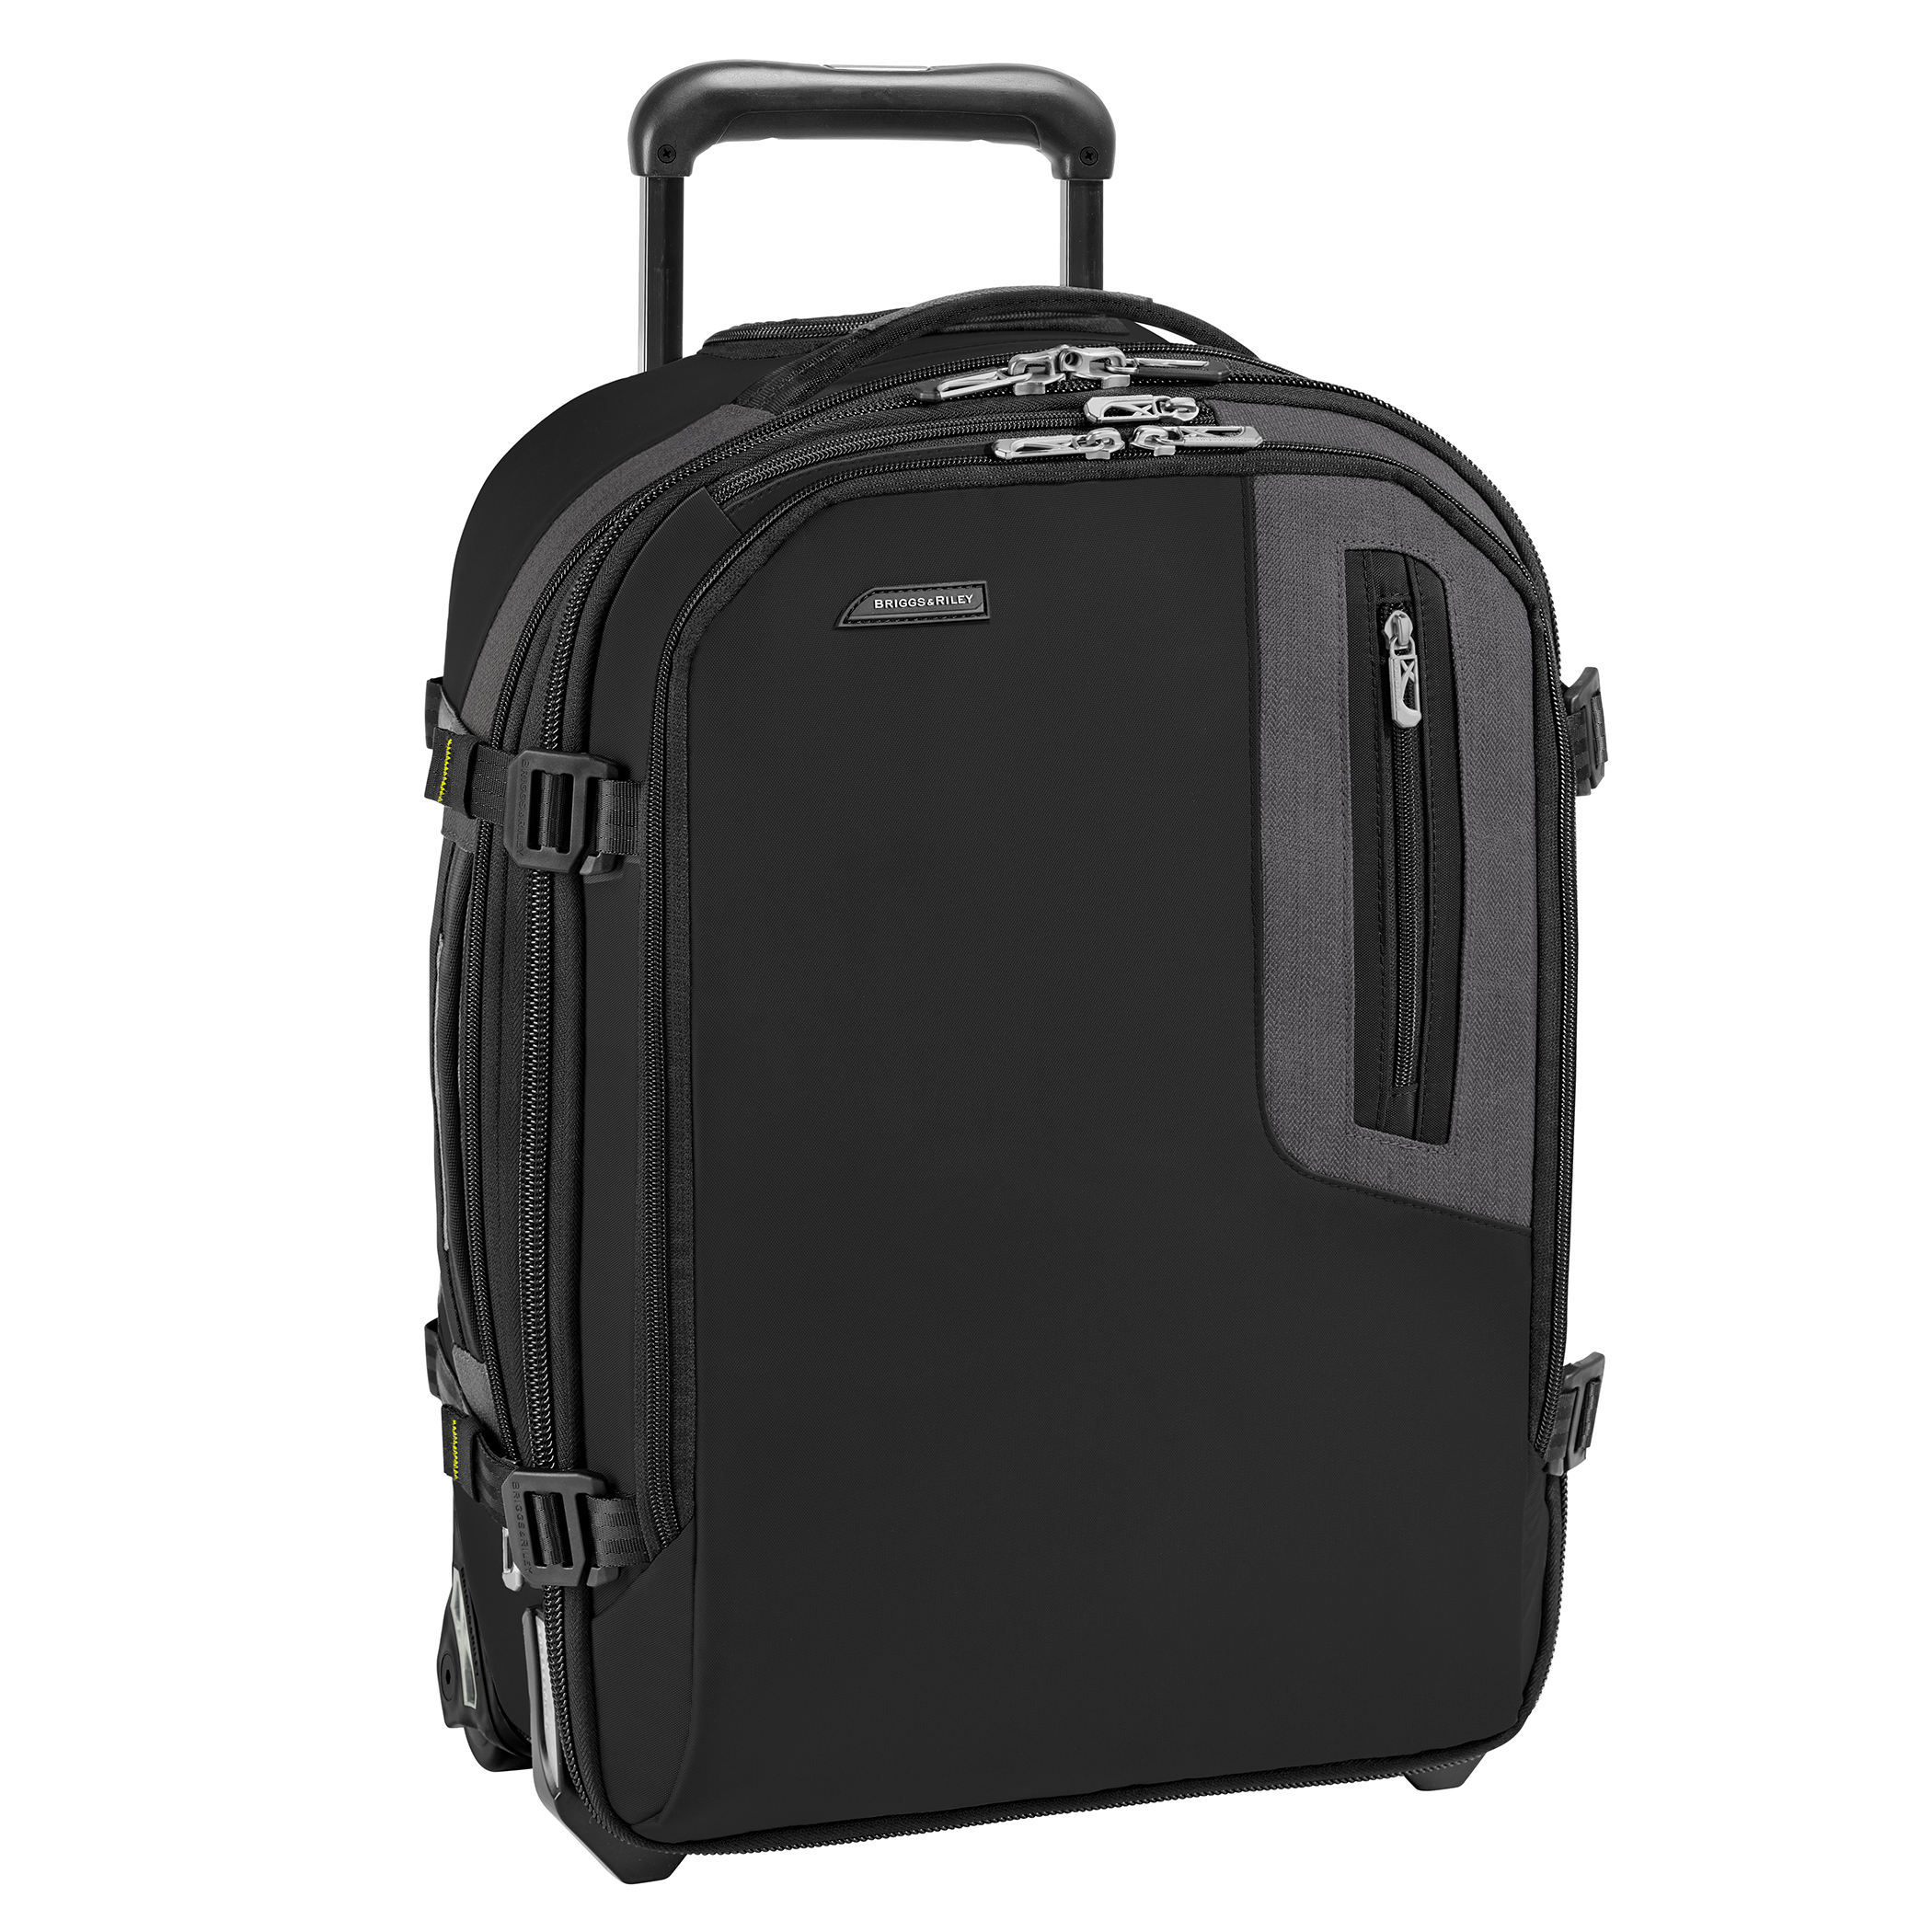 Briggs & Riley BRX BU220X-4 Explore Commuter Expandable Carry On Upright Black with LIFETIME WARRANTY